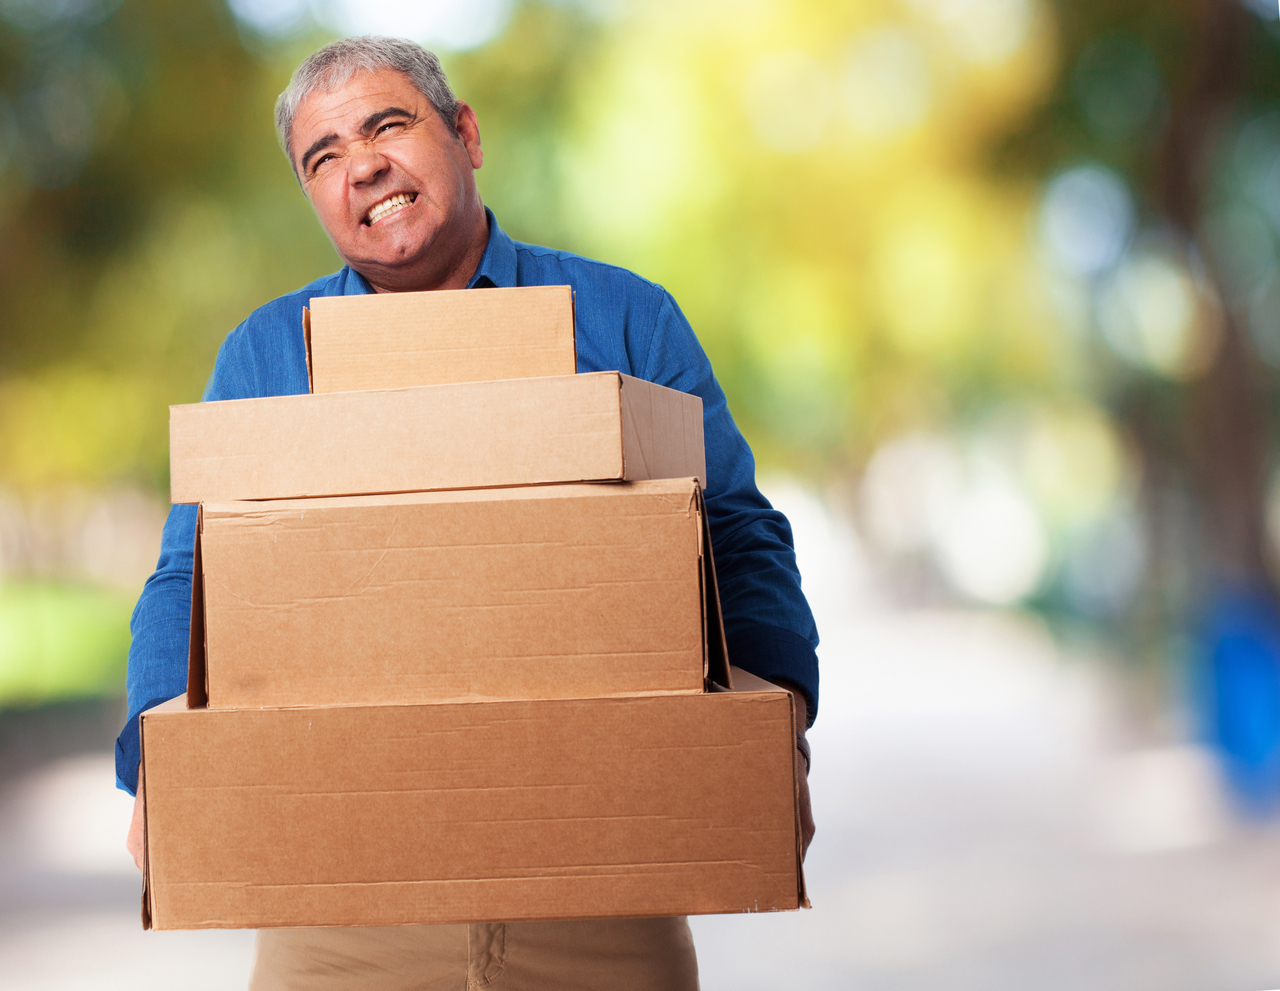 man with heavy boxes